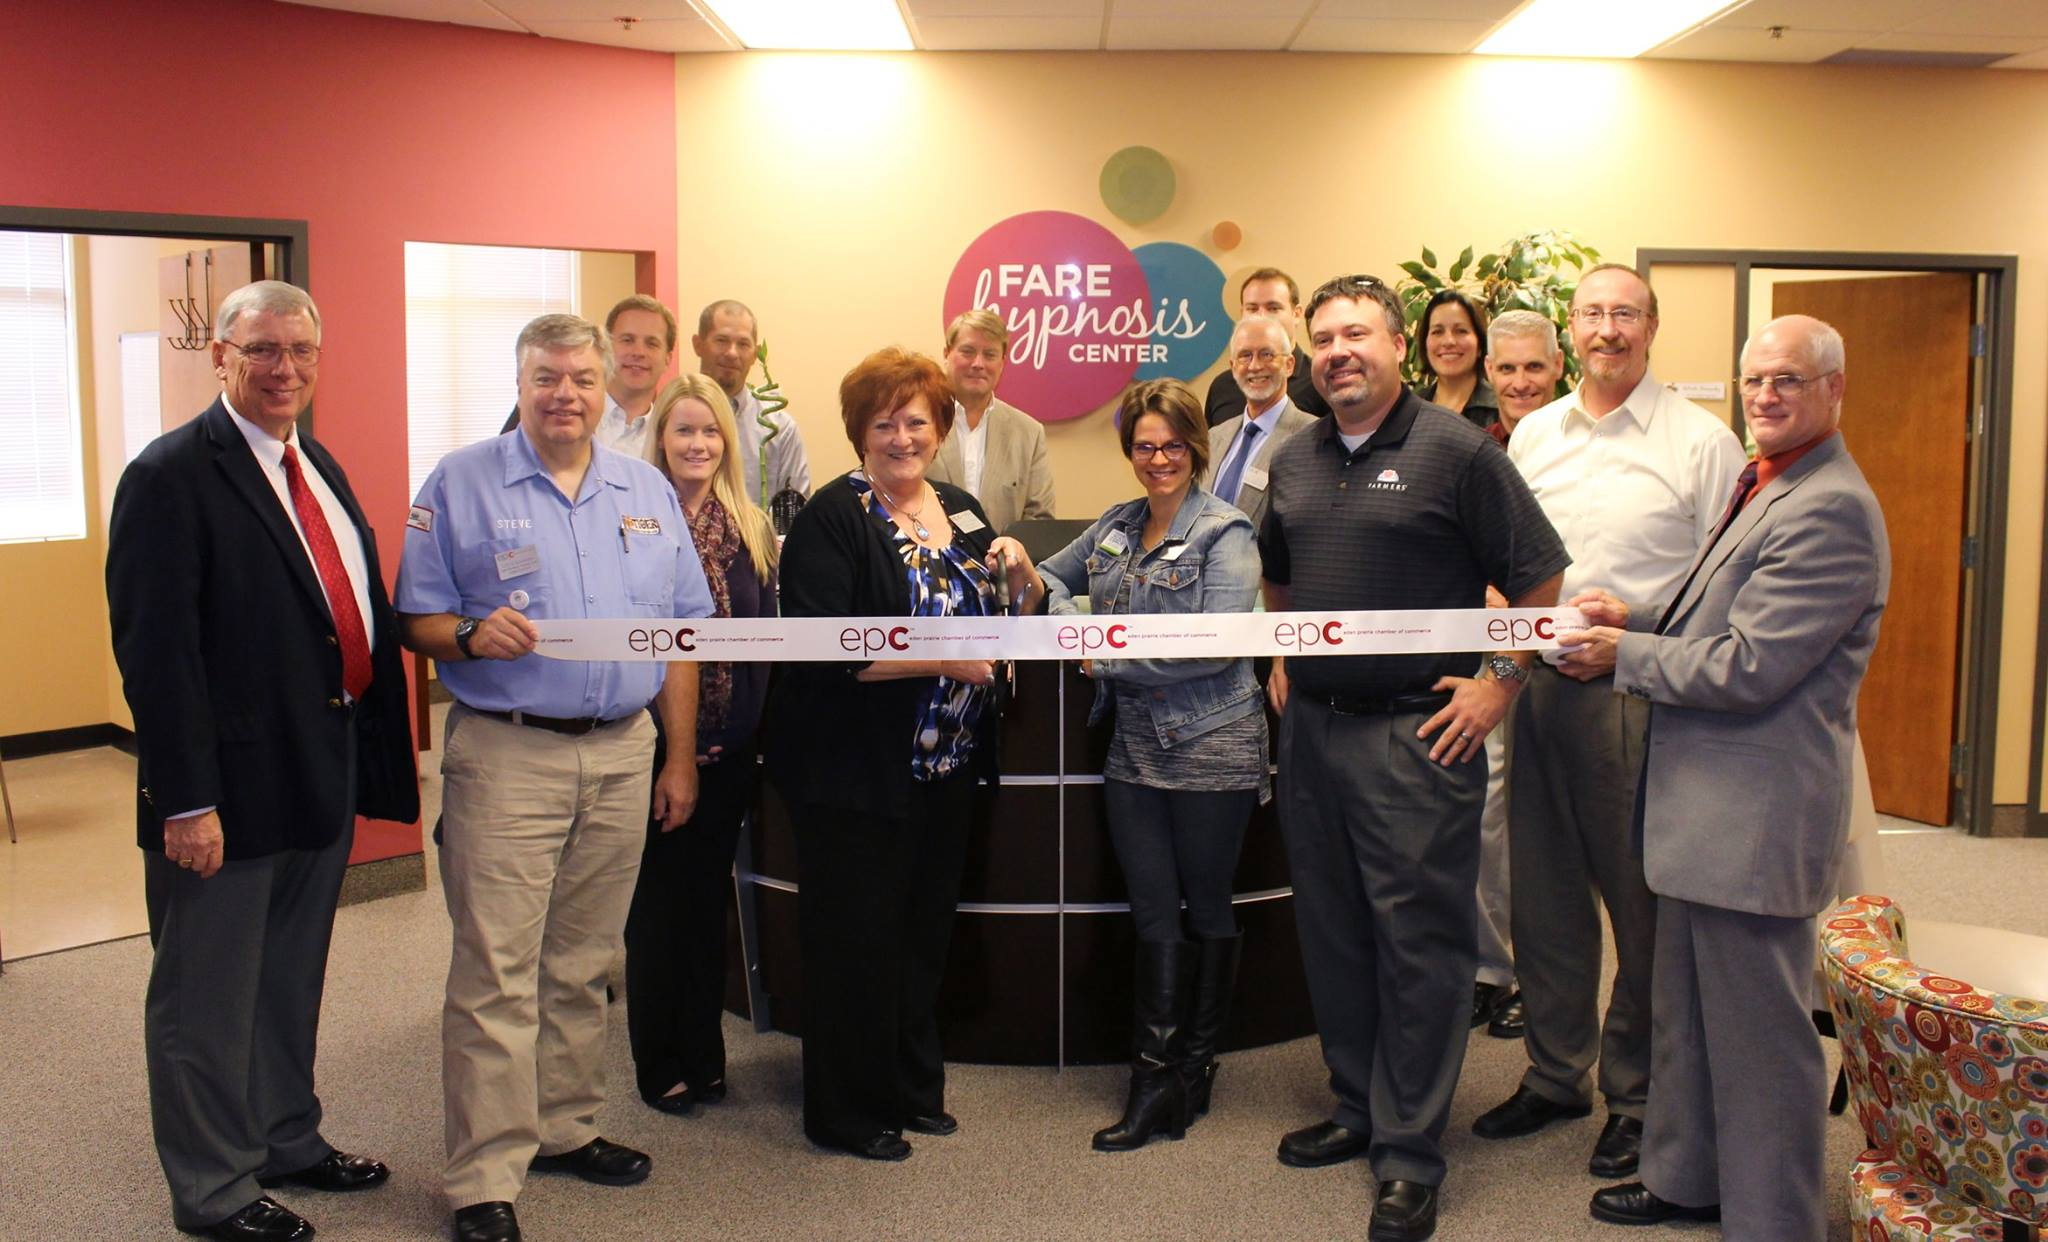 The FARE Hypnosis Center and Eden Prairie Chamber Ribbon Cutting